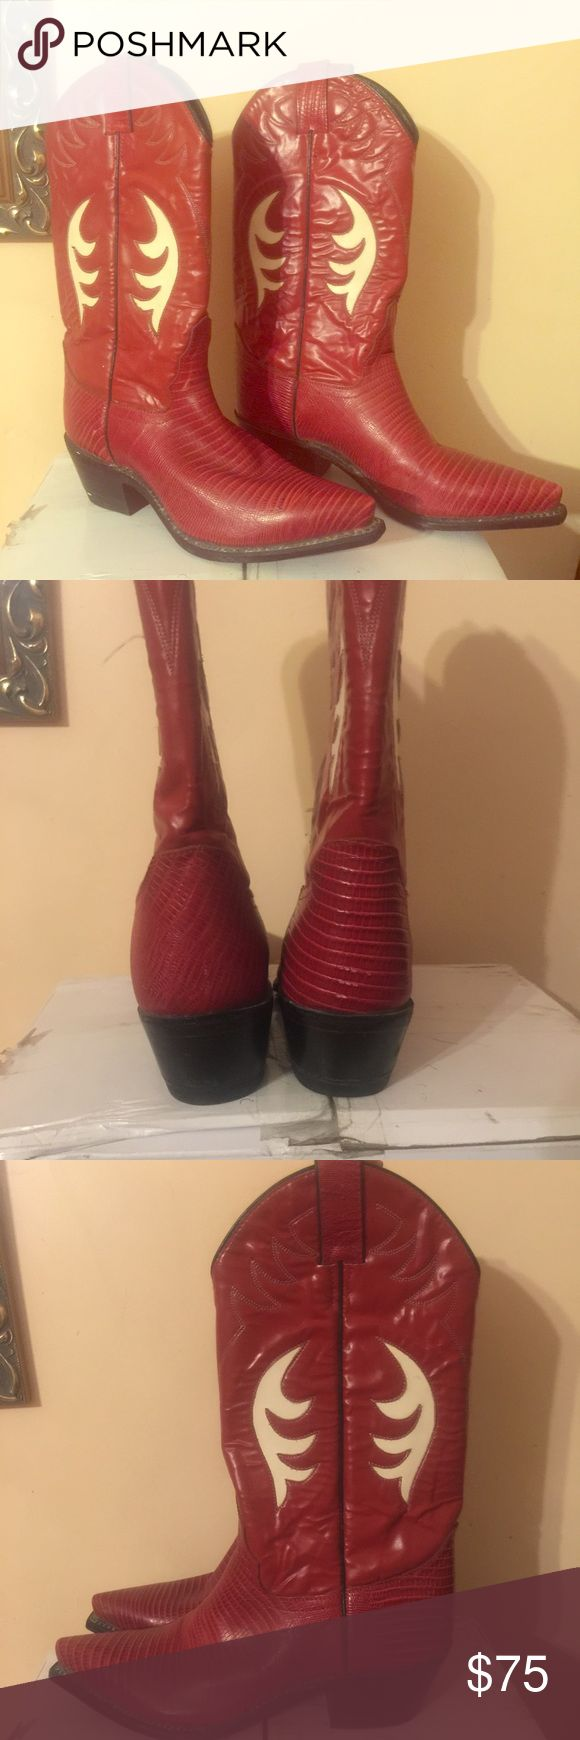 ↕️REDUCEDJustin Diamond J women's snakeskin boots Beautiful red all leather tall cowgirl boots. Pointy toe, size 7B. Great condition Justin Boots Shoes Heeled Boots